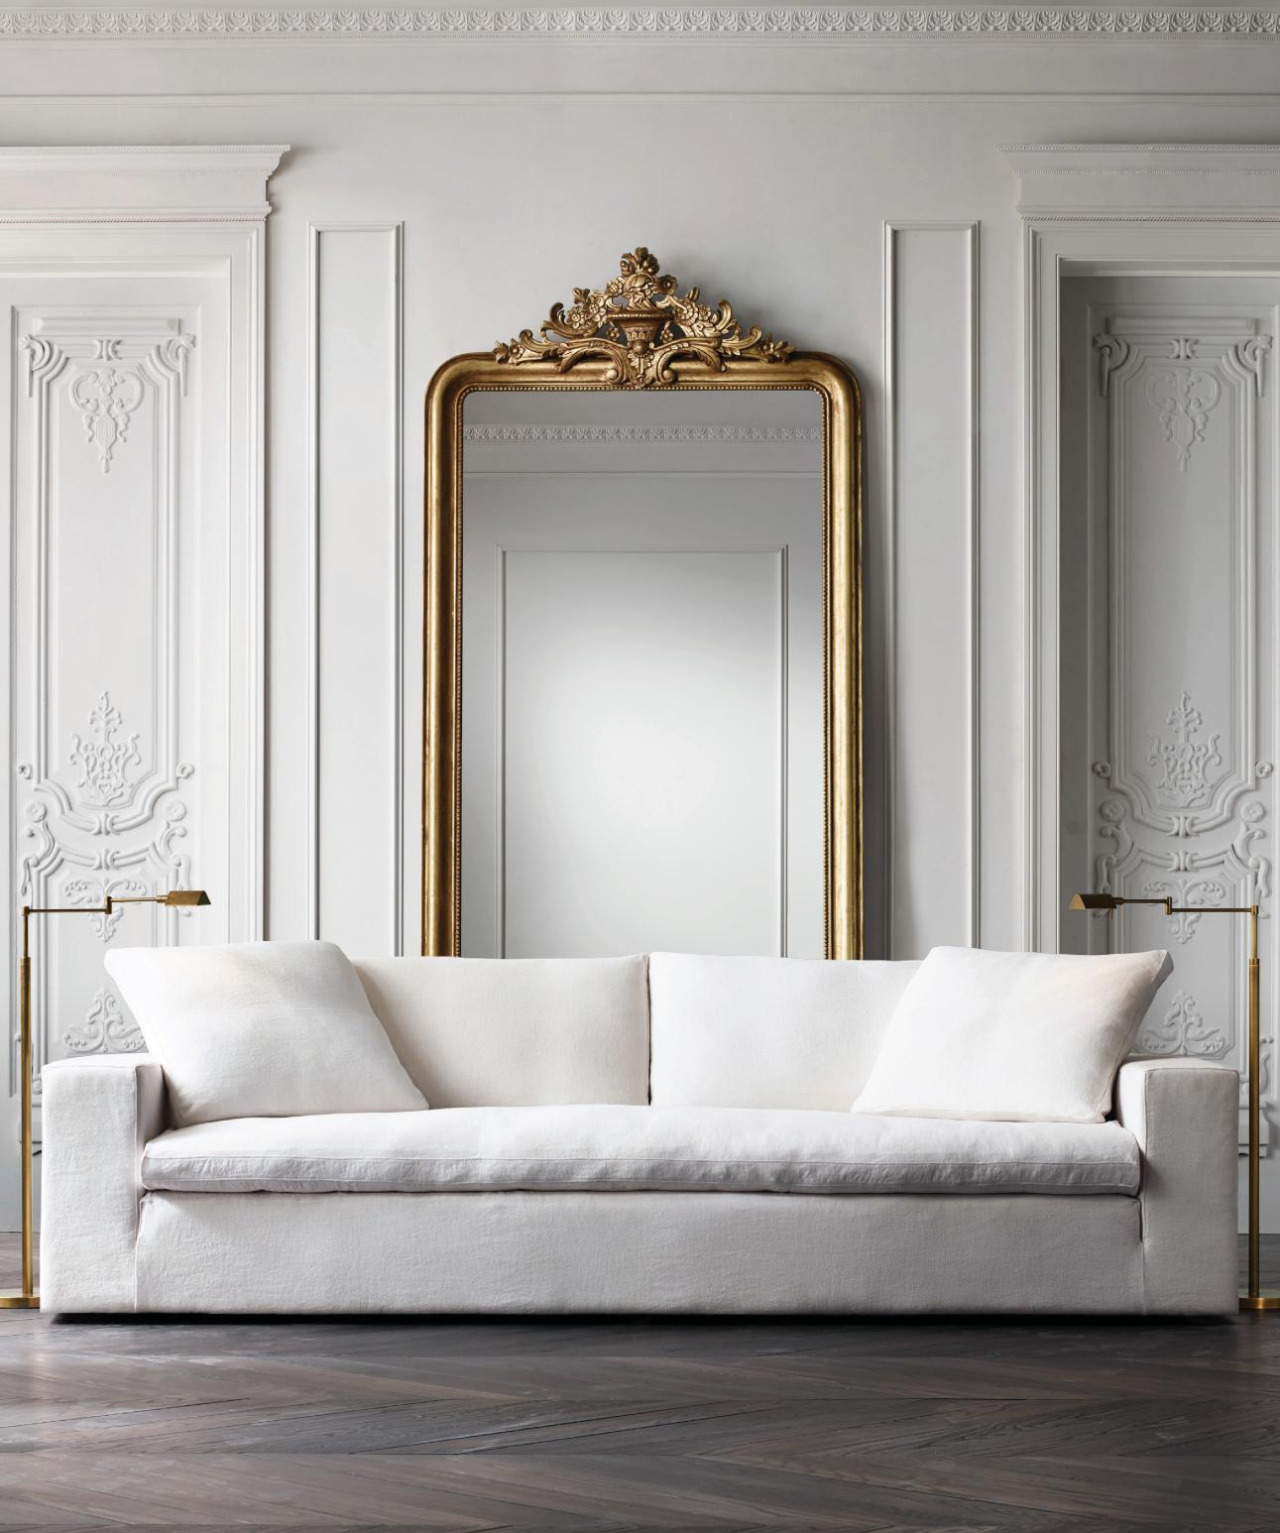 designer mirrors for living rooms stunning wall mirror designs for your living room decor 21830